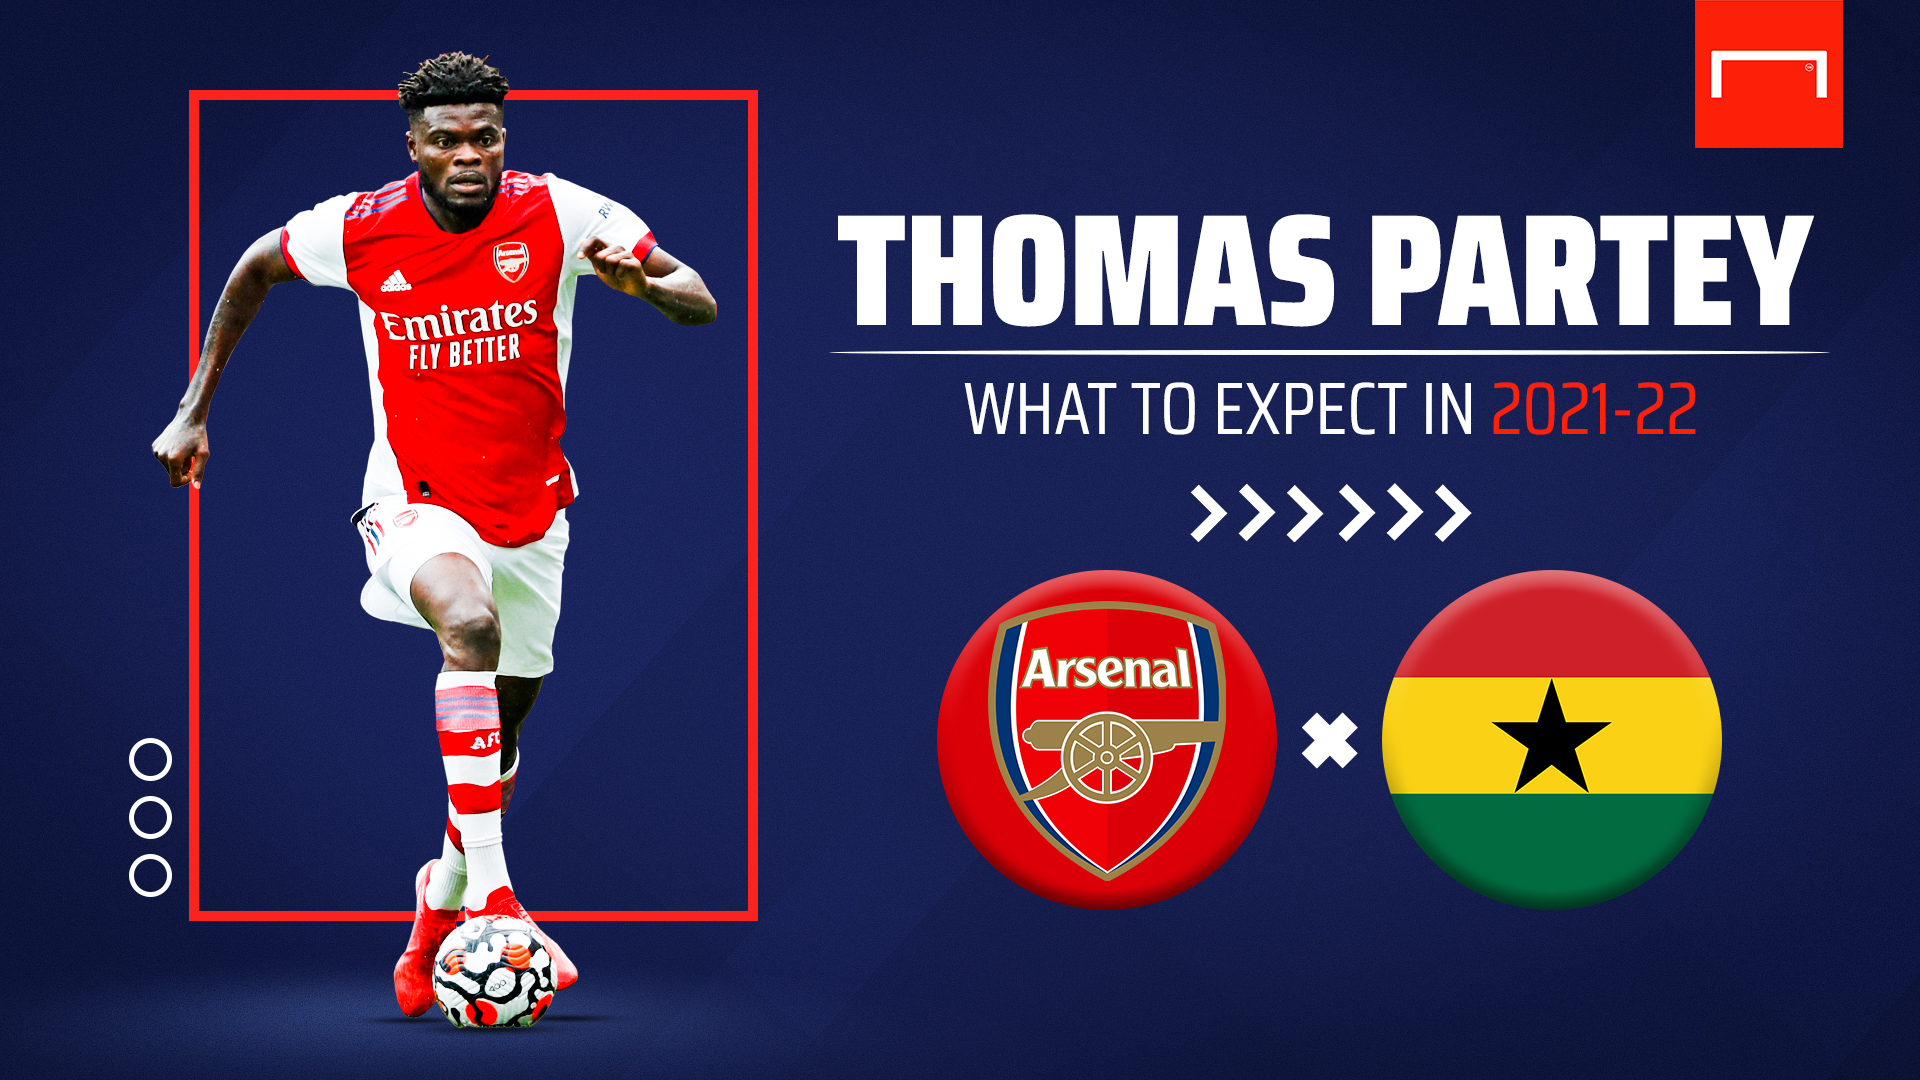 Thomas Partey: What to expect in 2021-22